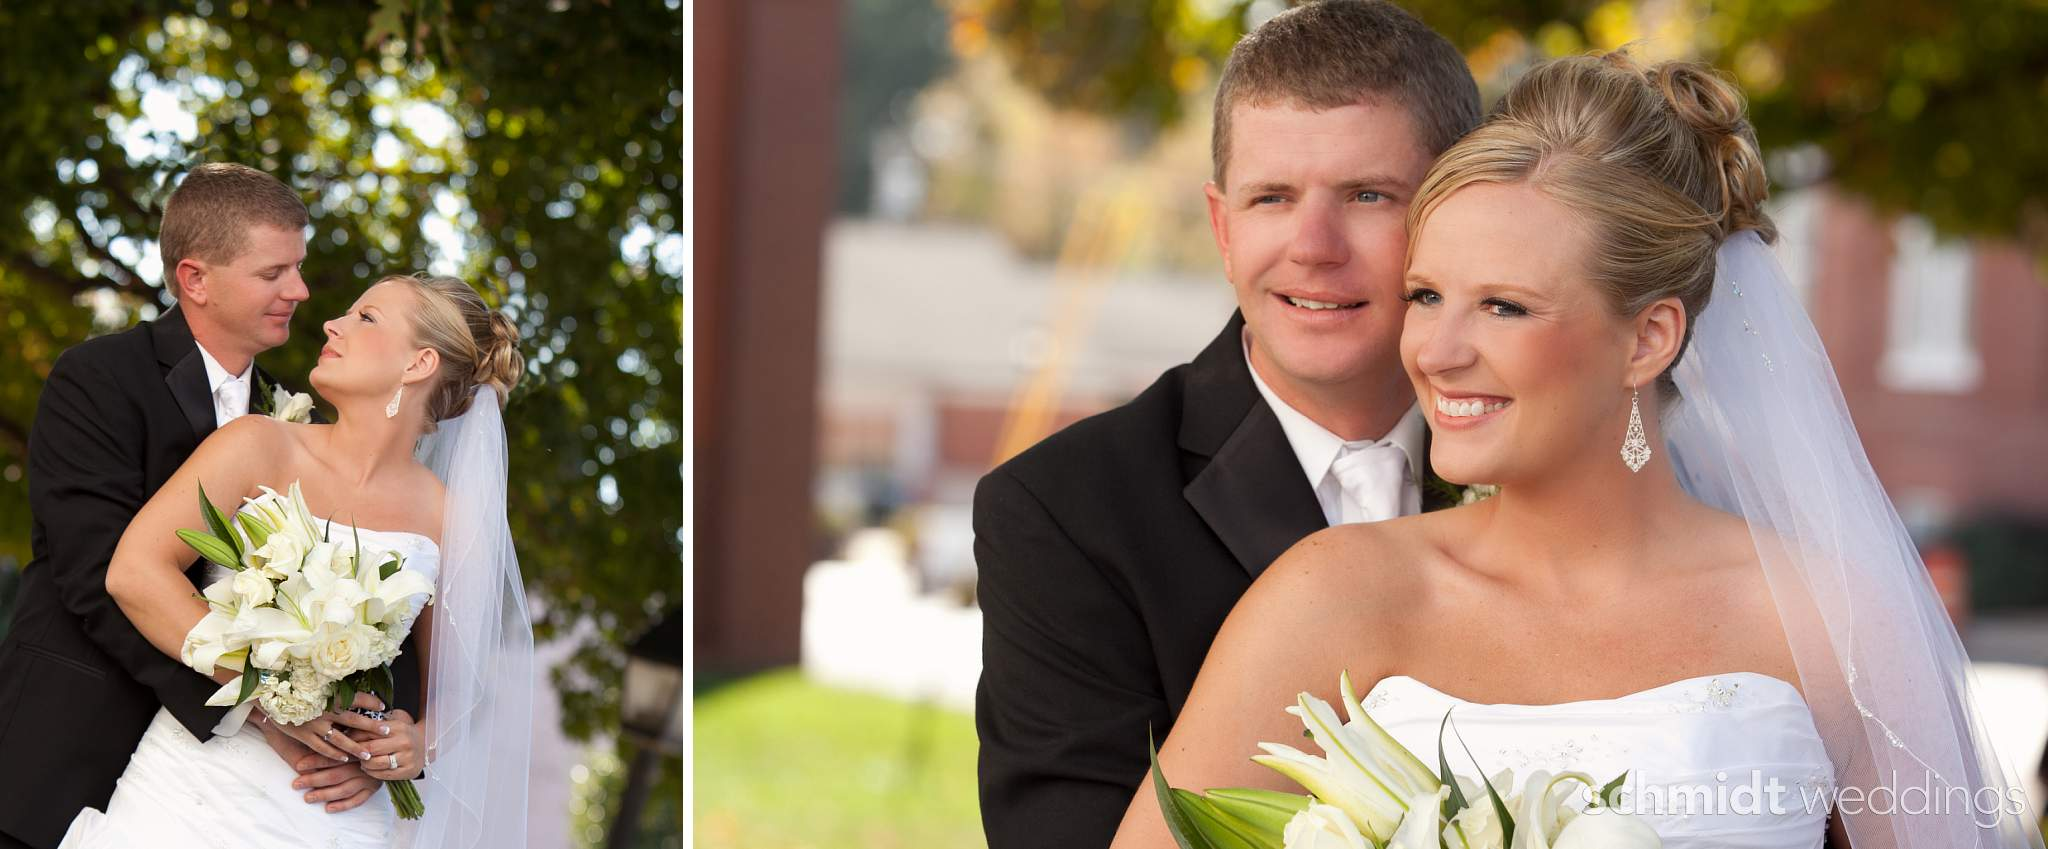 bride and groom couple portrait ideas - schmidtweddings